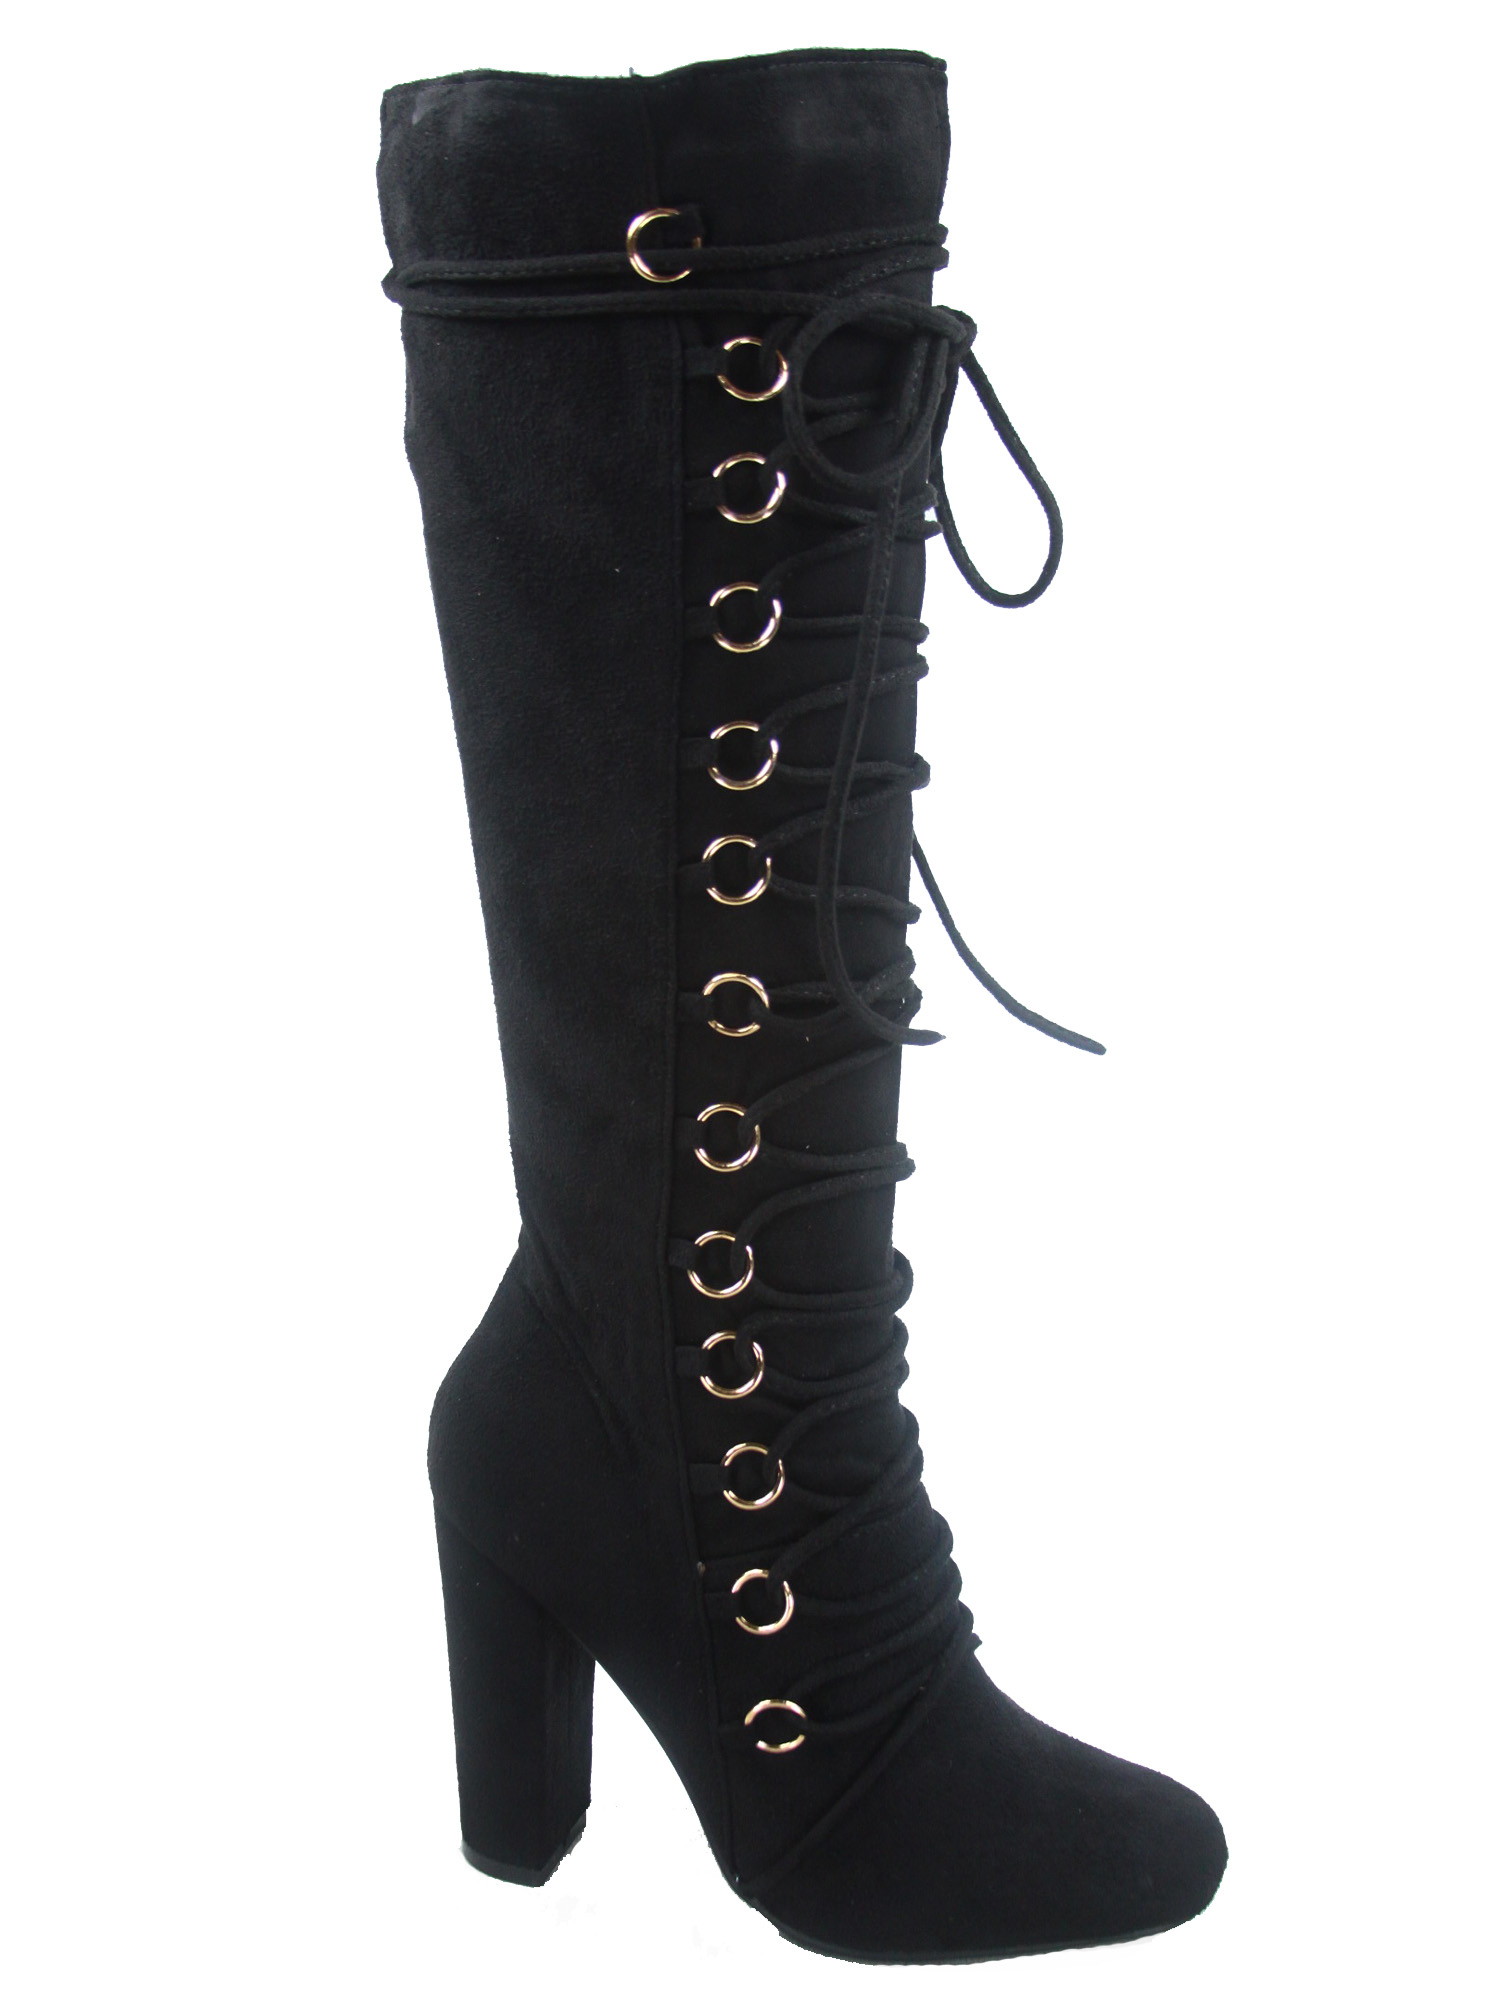 Women/'s  Lace Up Side Zip Mid-Calf Knee High Chunky High Heel Boots 5.5-10 NEW